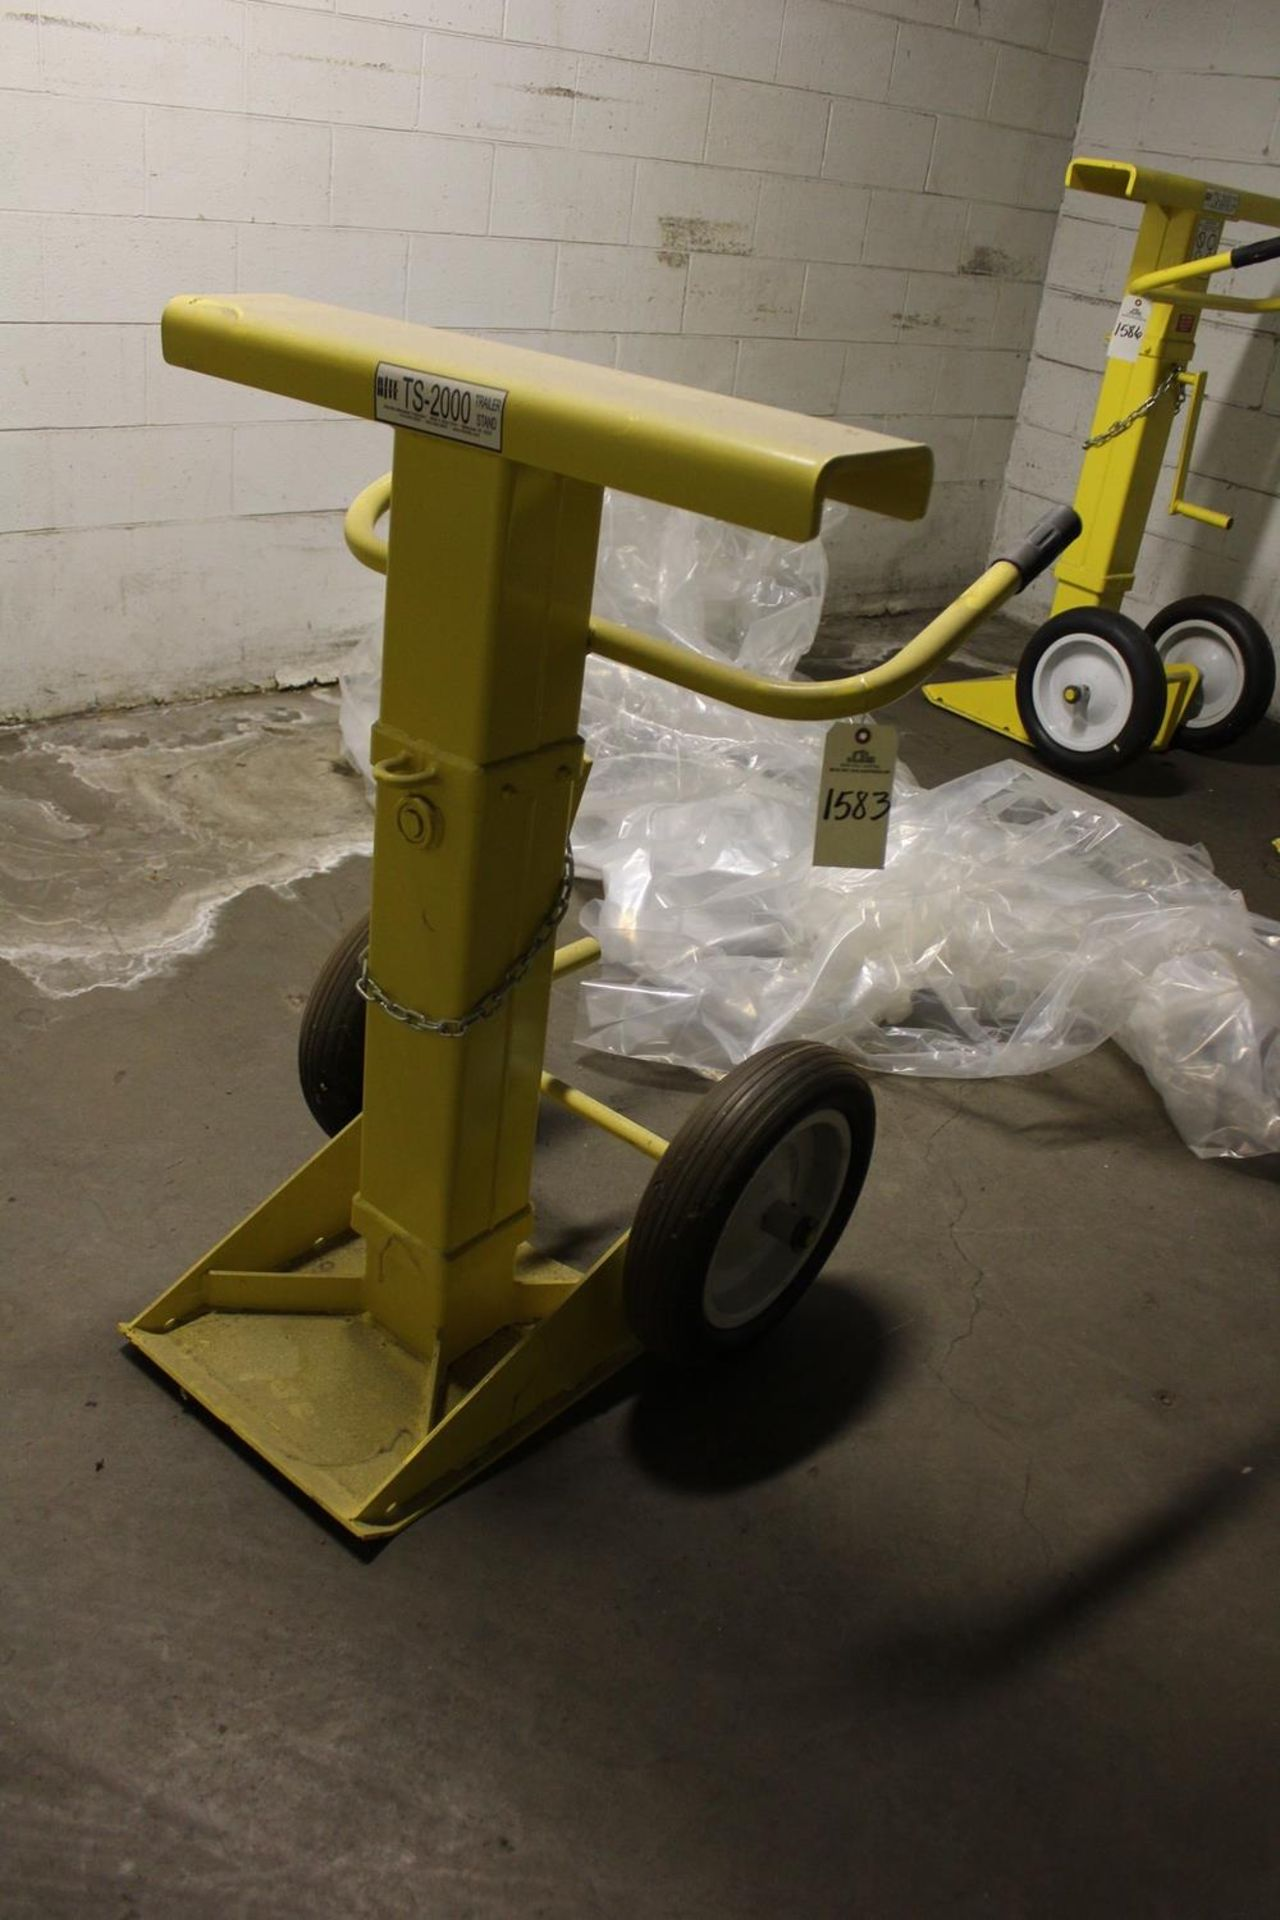 Lot 1583 - Rite Hite TS-2000 Trailer Stand - Subject to Bulk Bid Lot 15 | Rig Fee: Hand Carry or Contact Rigger